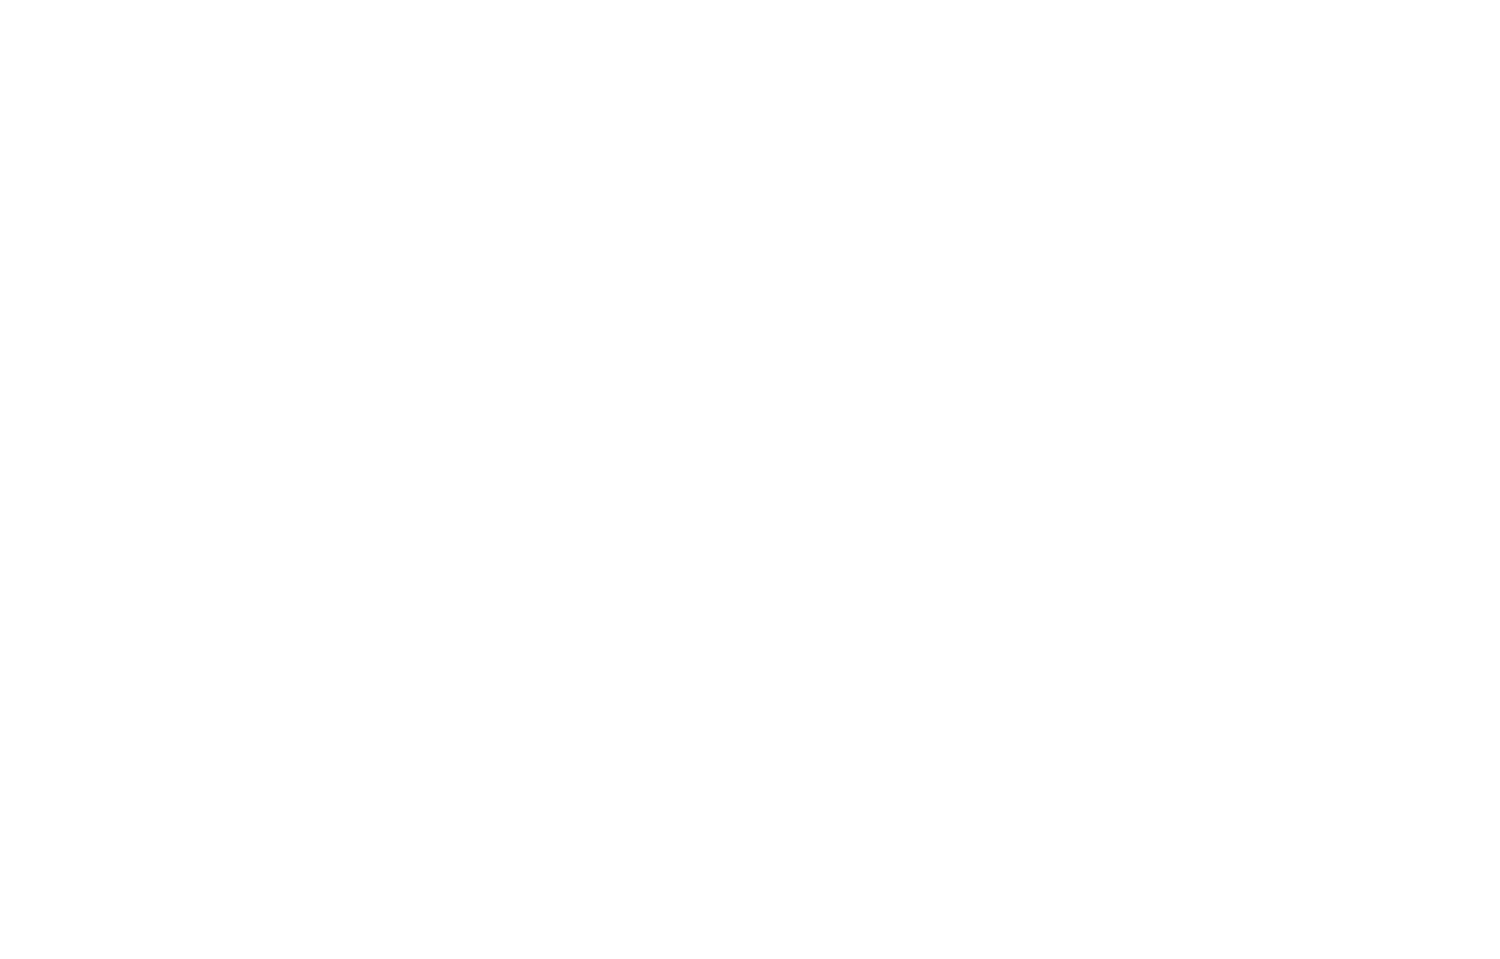 Windy City Invitational